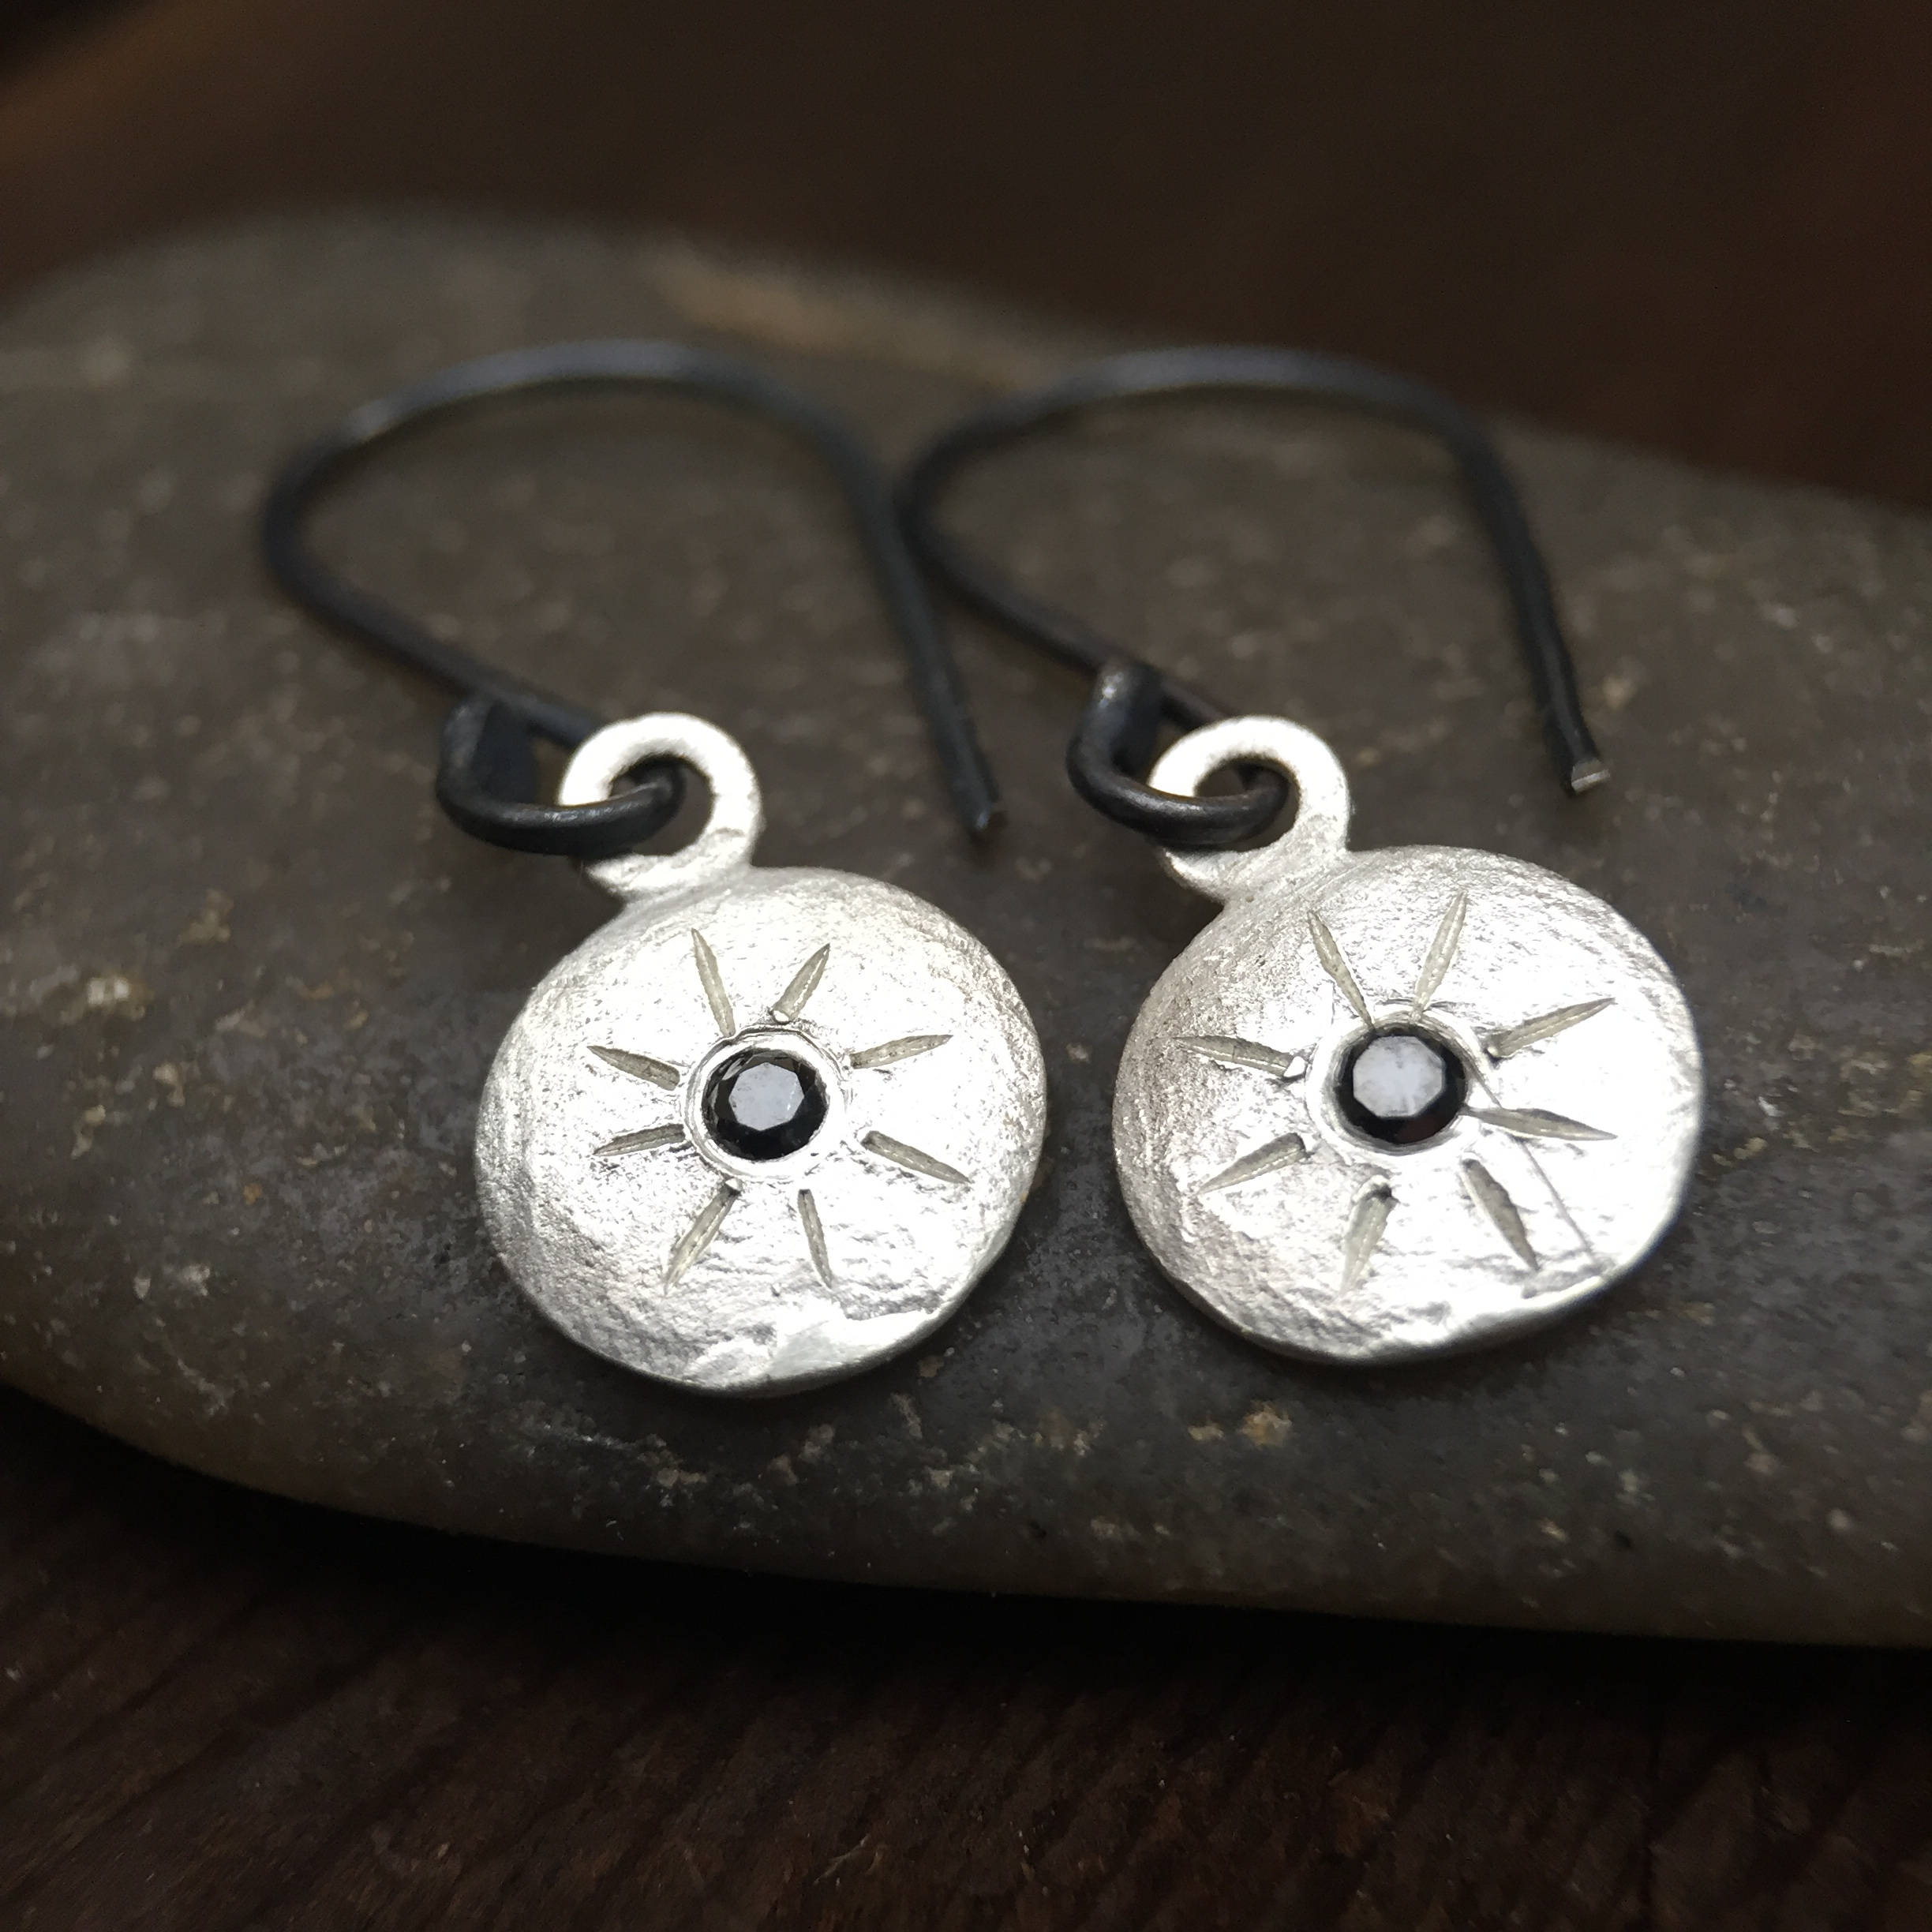 Black Diamond Starburst Coin Drop Earrings Sterling Silver Drop Dangle Earrings Minimal Jewelry Rustic Earrings Sterling Black Diamonds